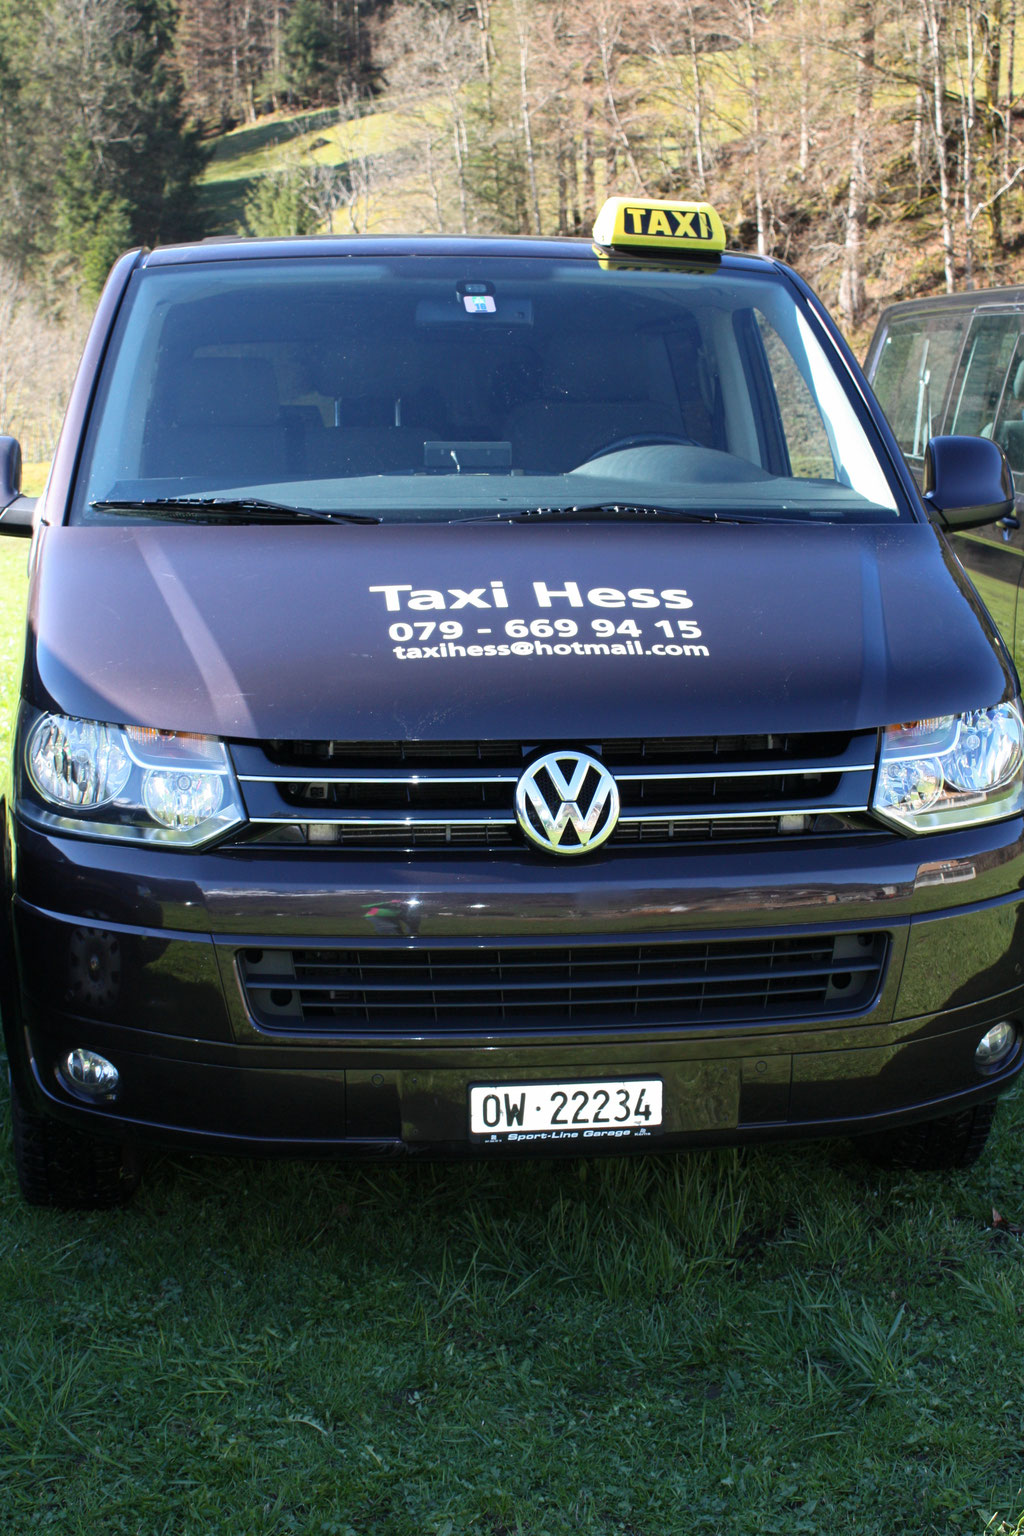 VW T5 in brown